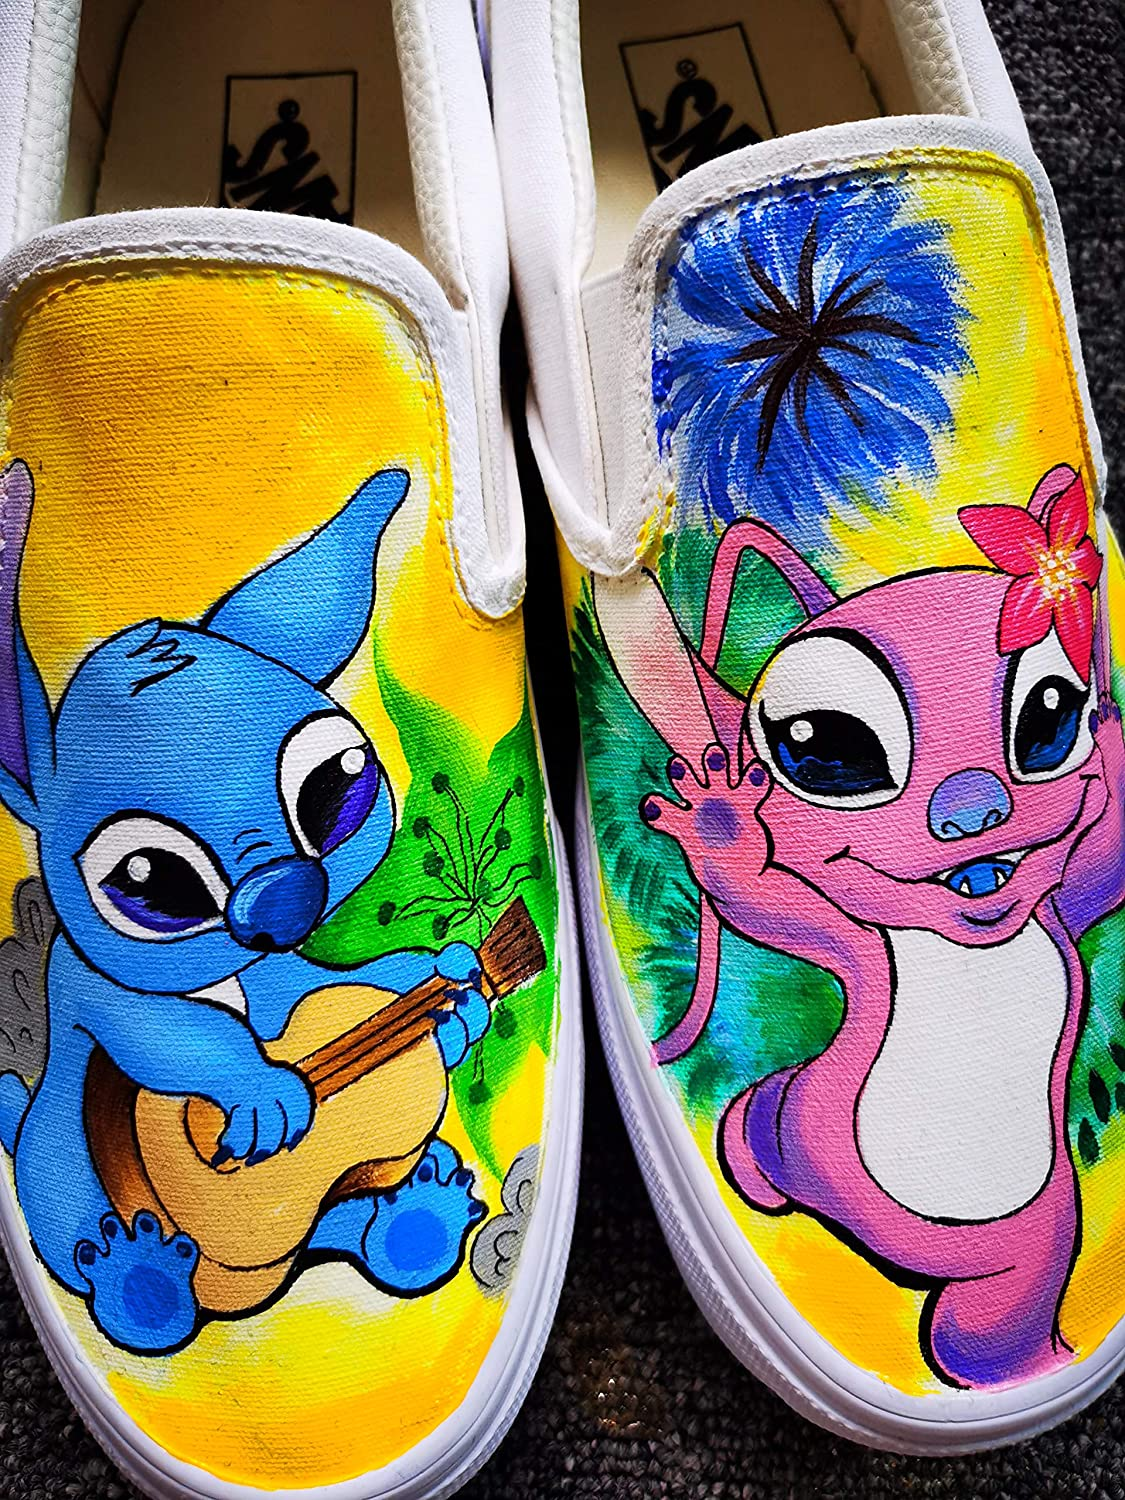 Disney Stitch Shoes Anime Hand Painted Shoes Women Mens Canvas Sneakers for Birthday Presents Free Shipping